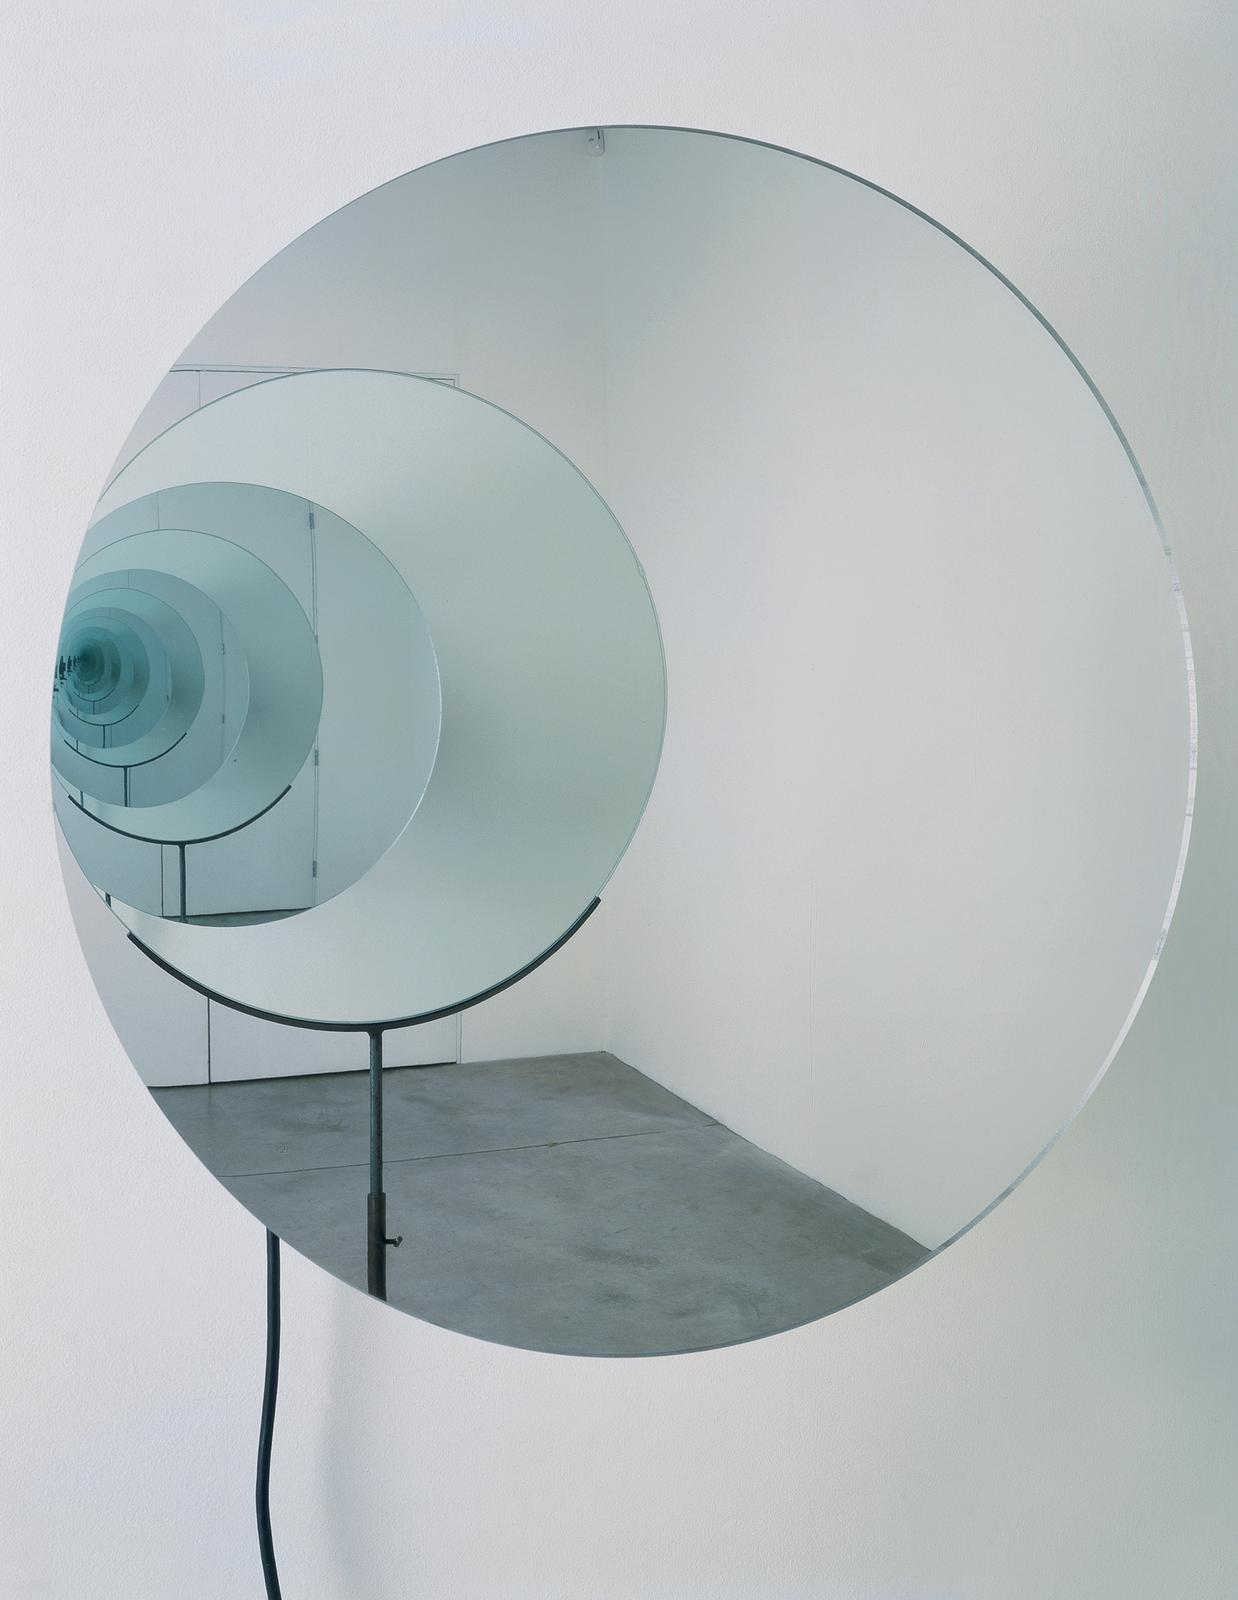 Untitled Spinning Mi Artwork Studio Olafur Eliasson